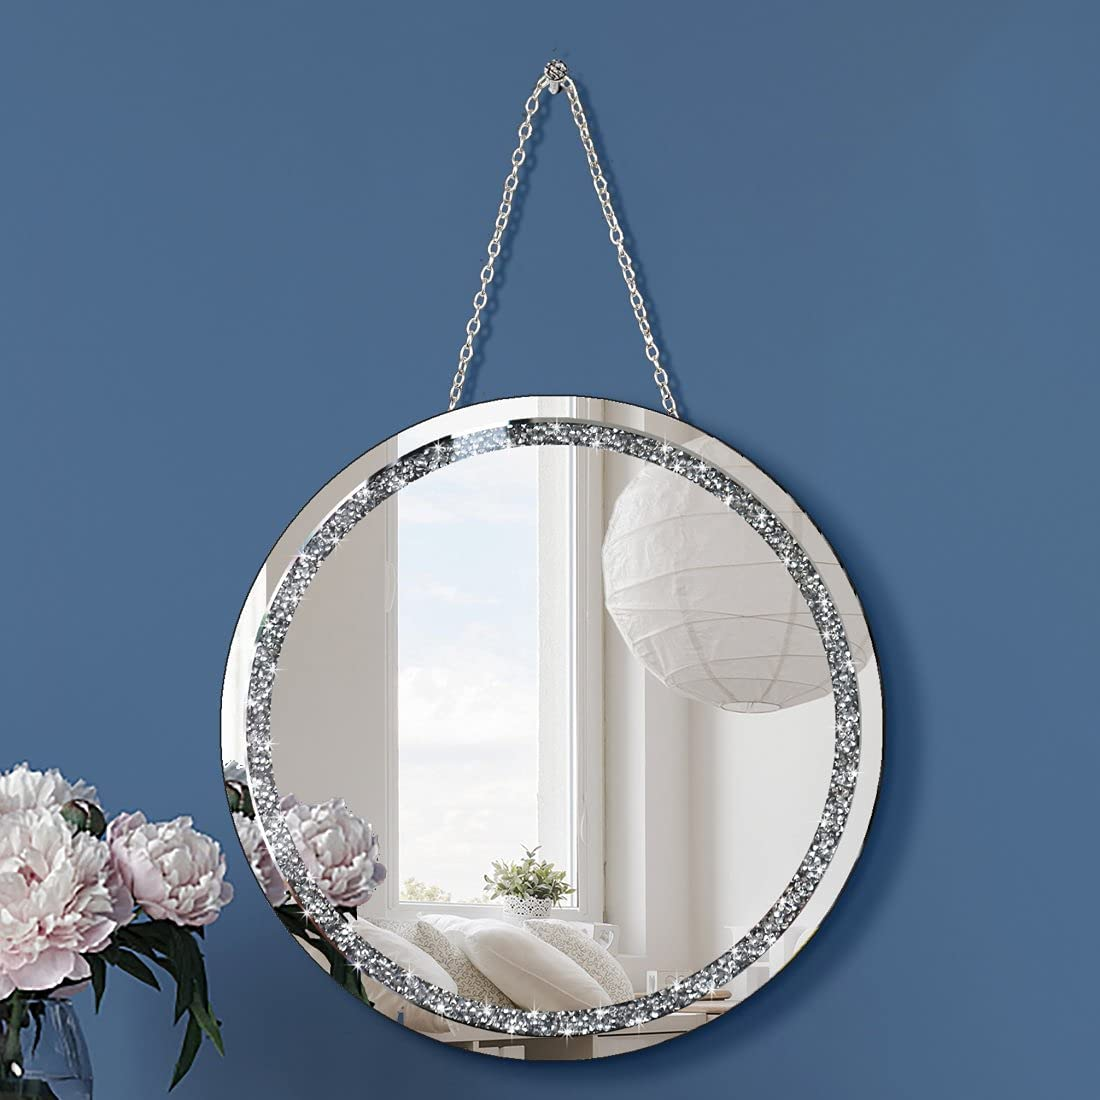 Crystal Crush Diamond Round Silver Mirror with Iron Chain for Wall Decoration Diameter Circle 12 inch Wall Hang Frameless Mirror Small Handicraft Art